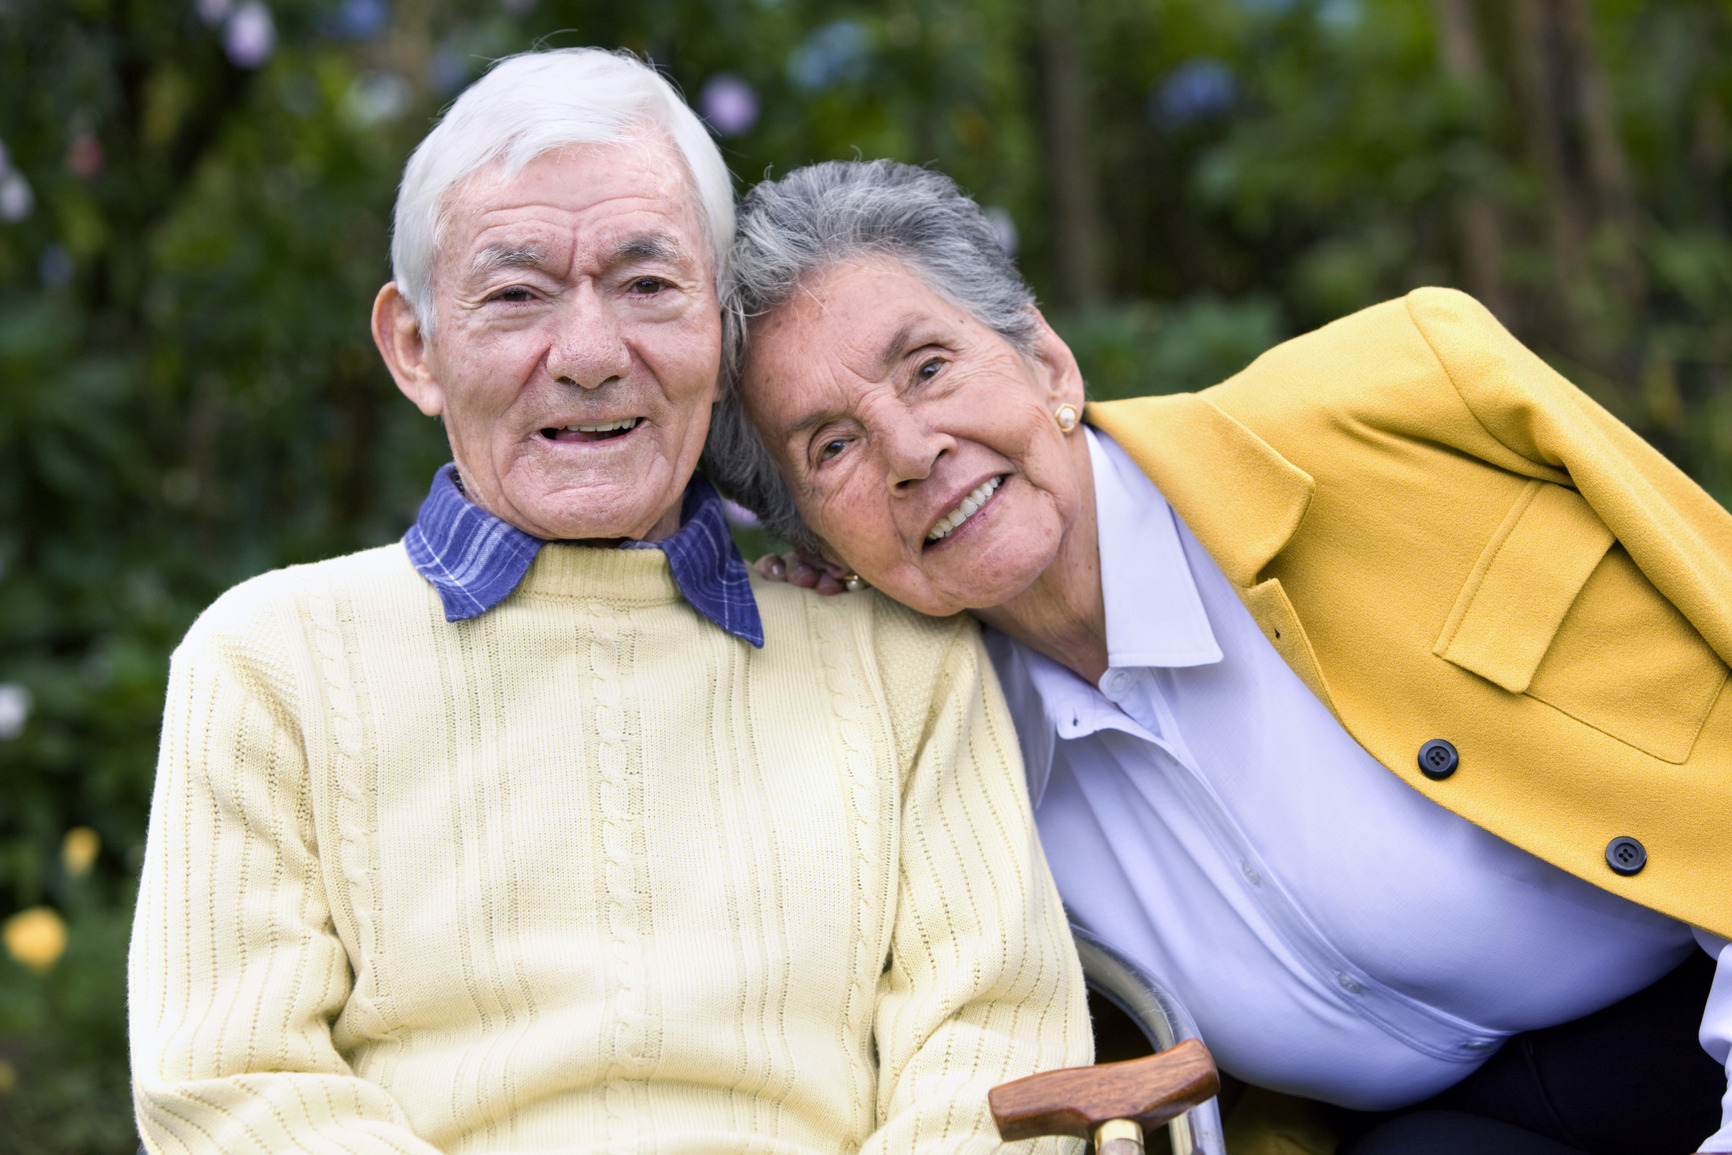 elderly-couple-outdoors.jpg